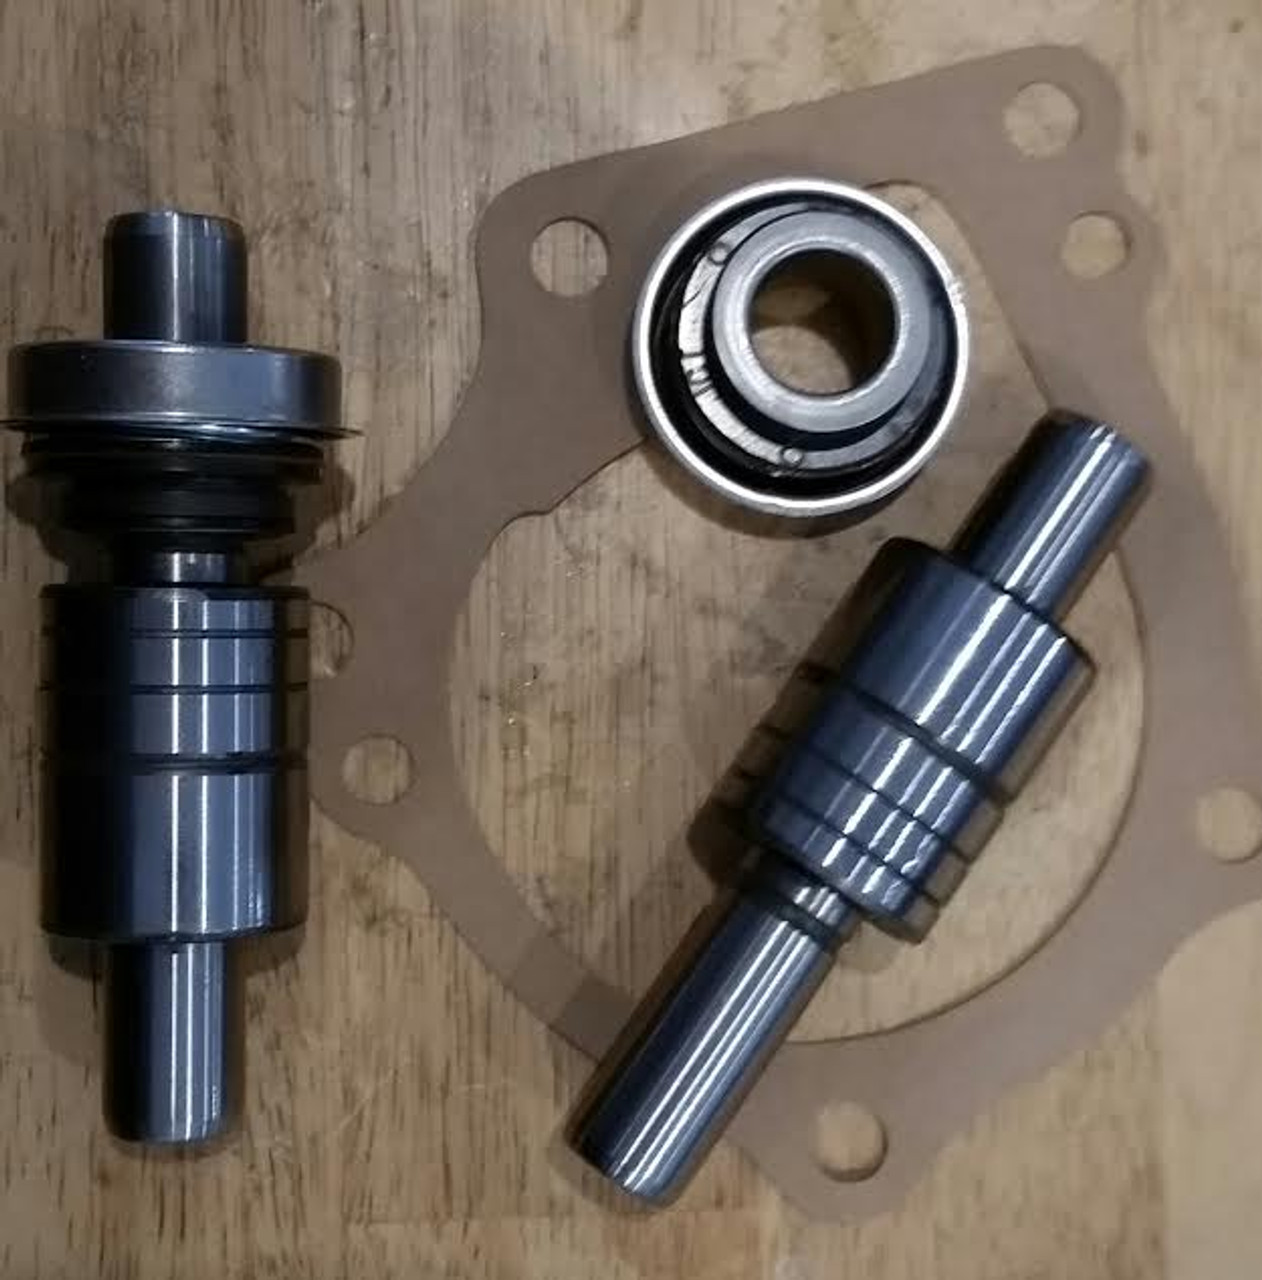 WP111 Bearing, Seal and Gasket For rebuilding the MGC Water Pump